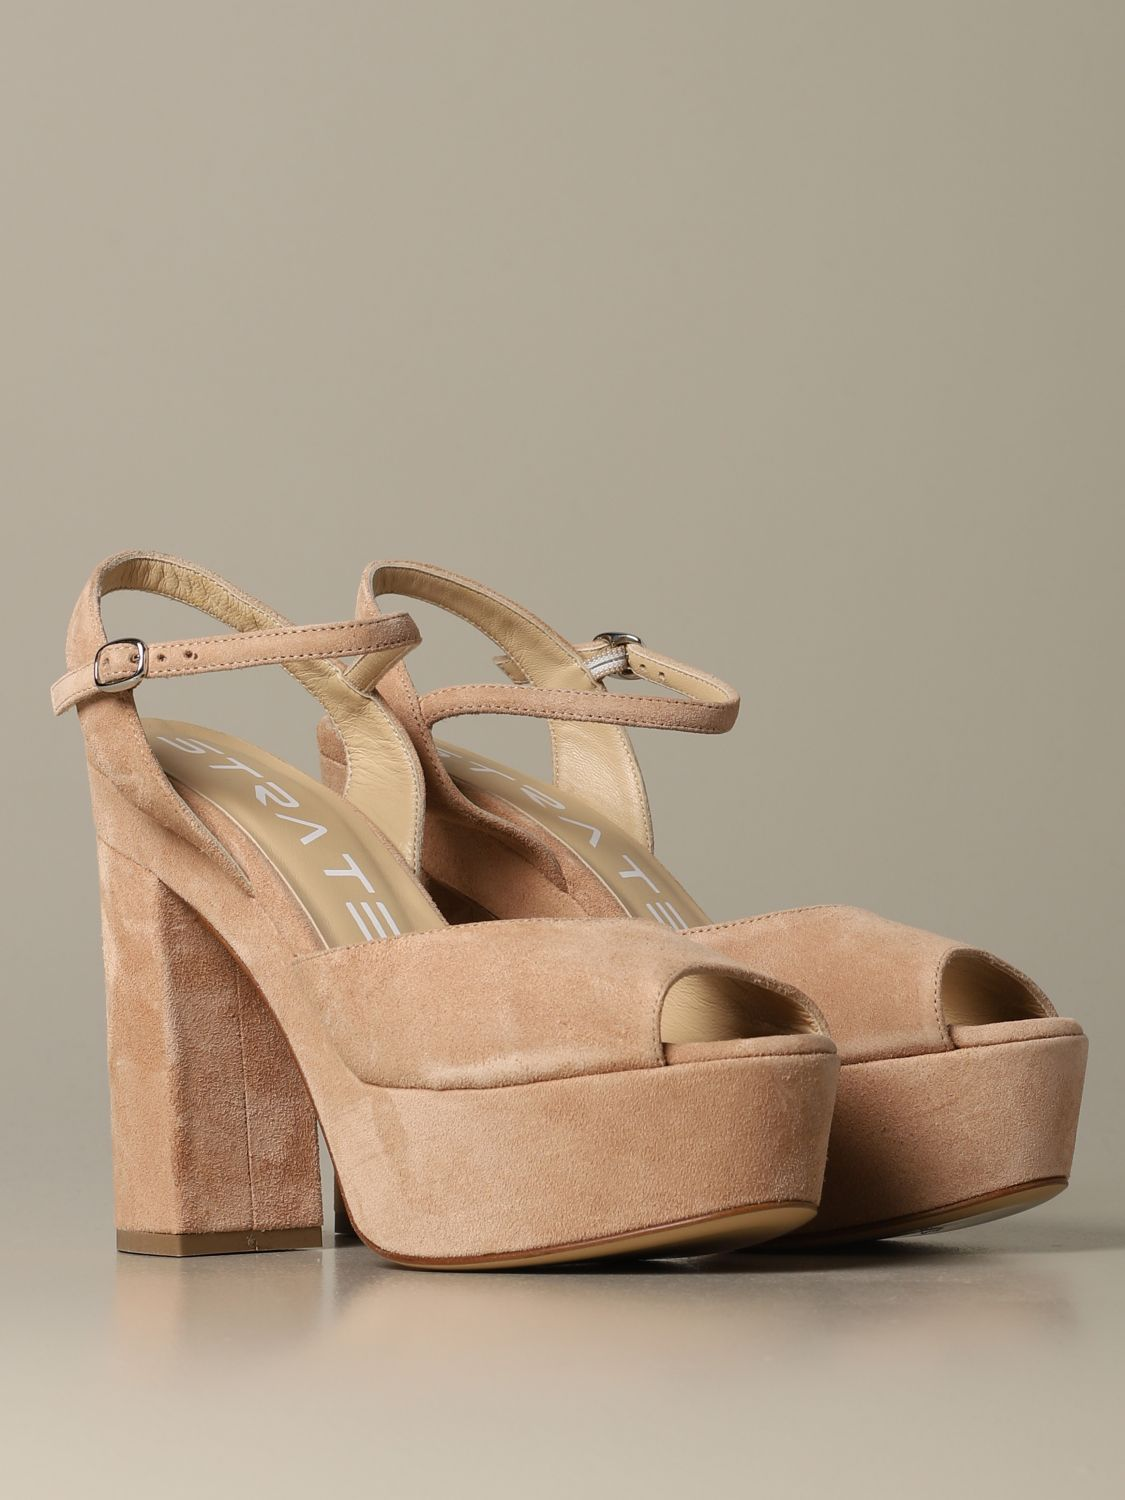 Shoes women Strategia pink 2